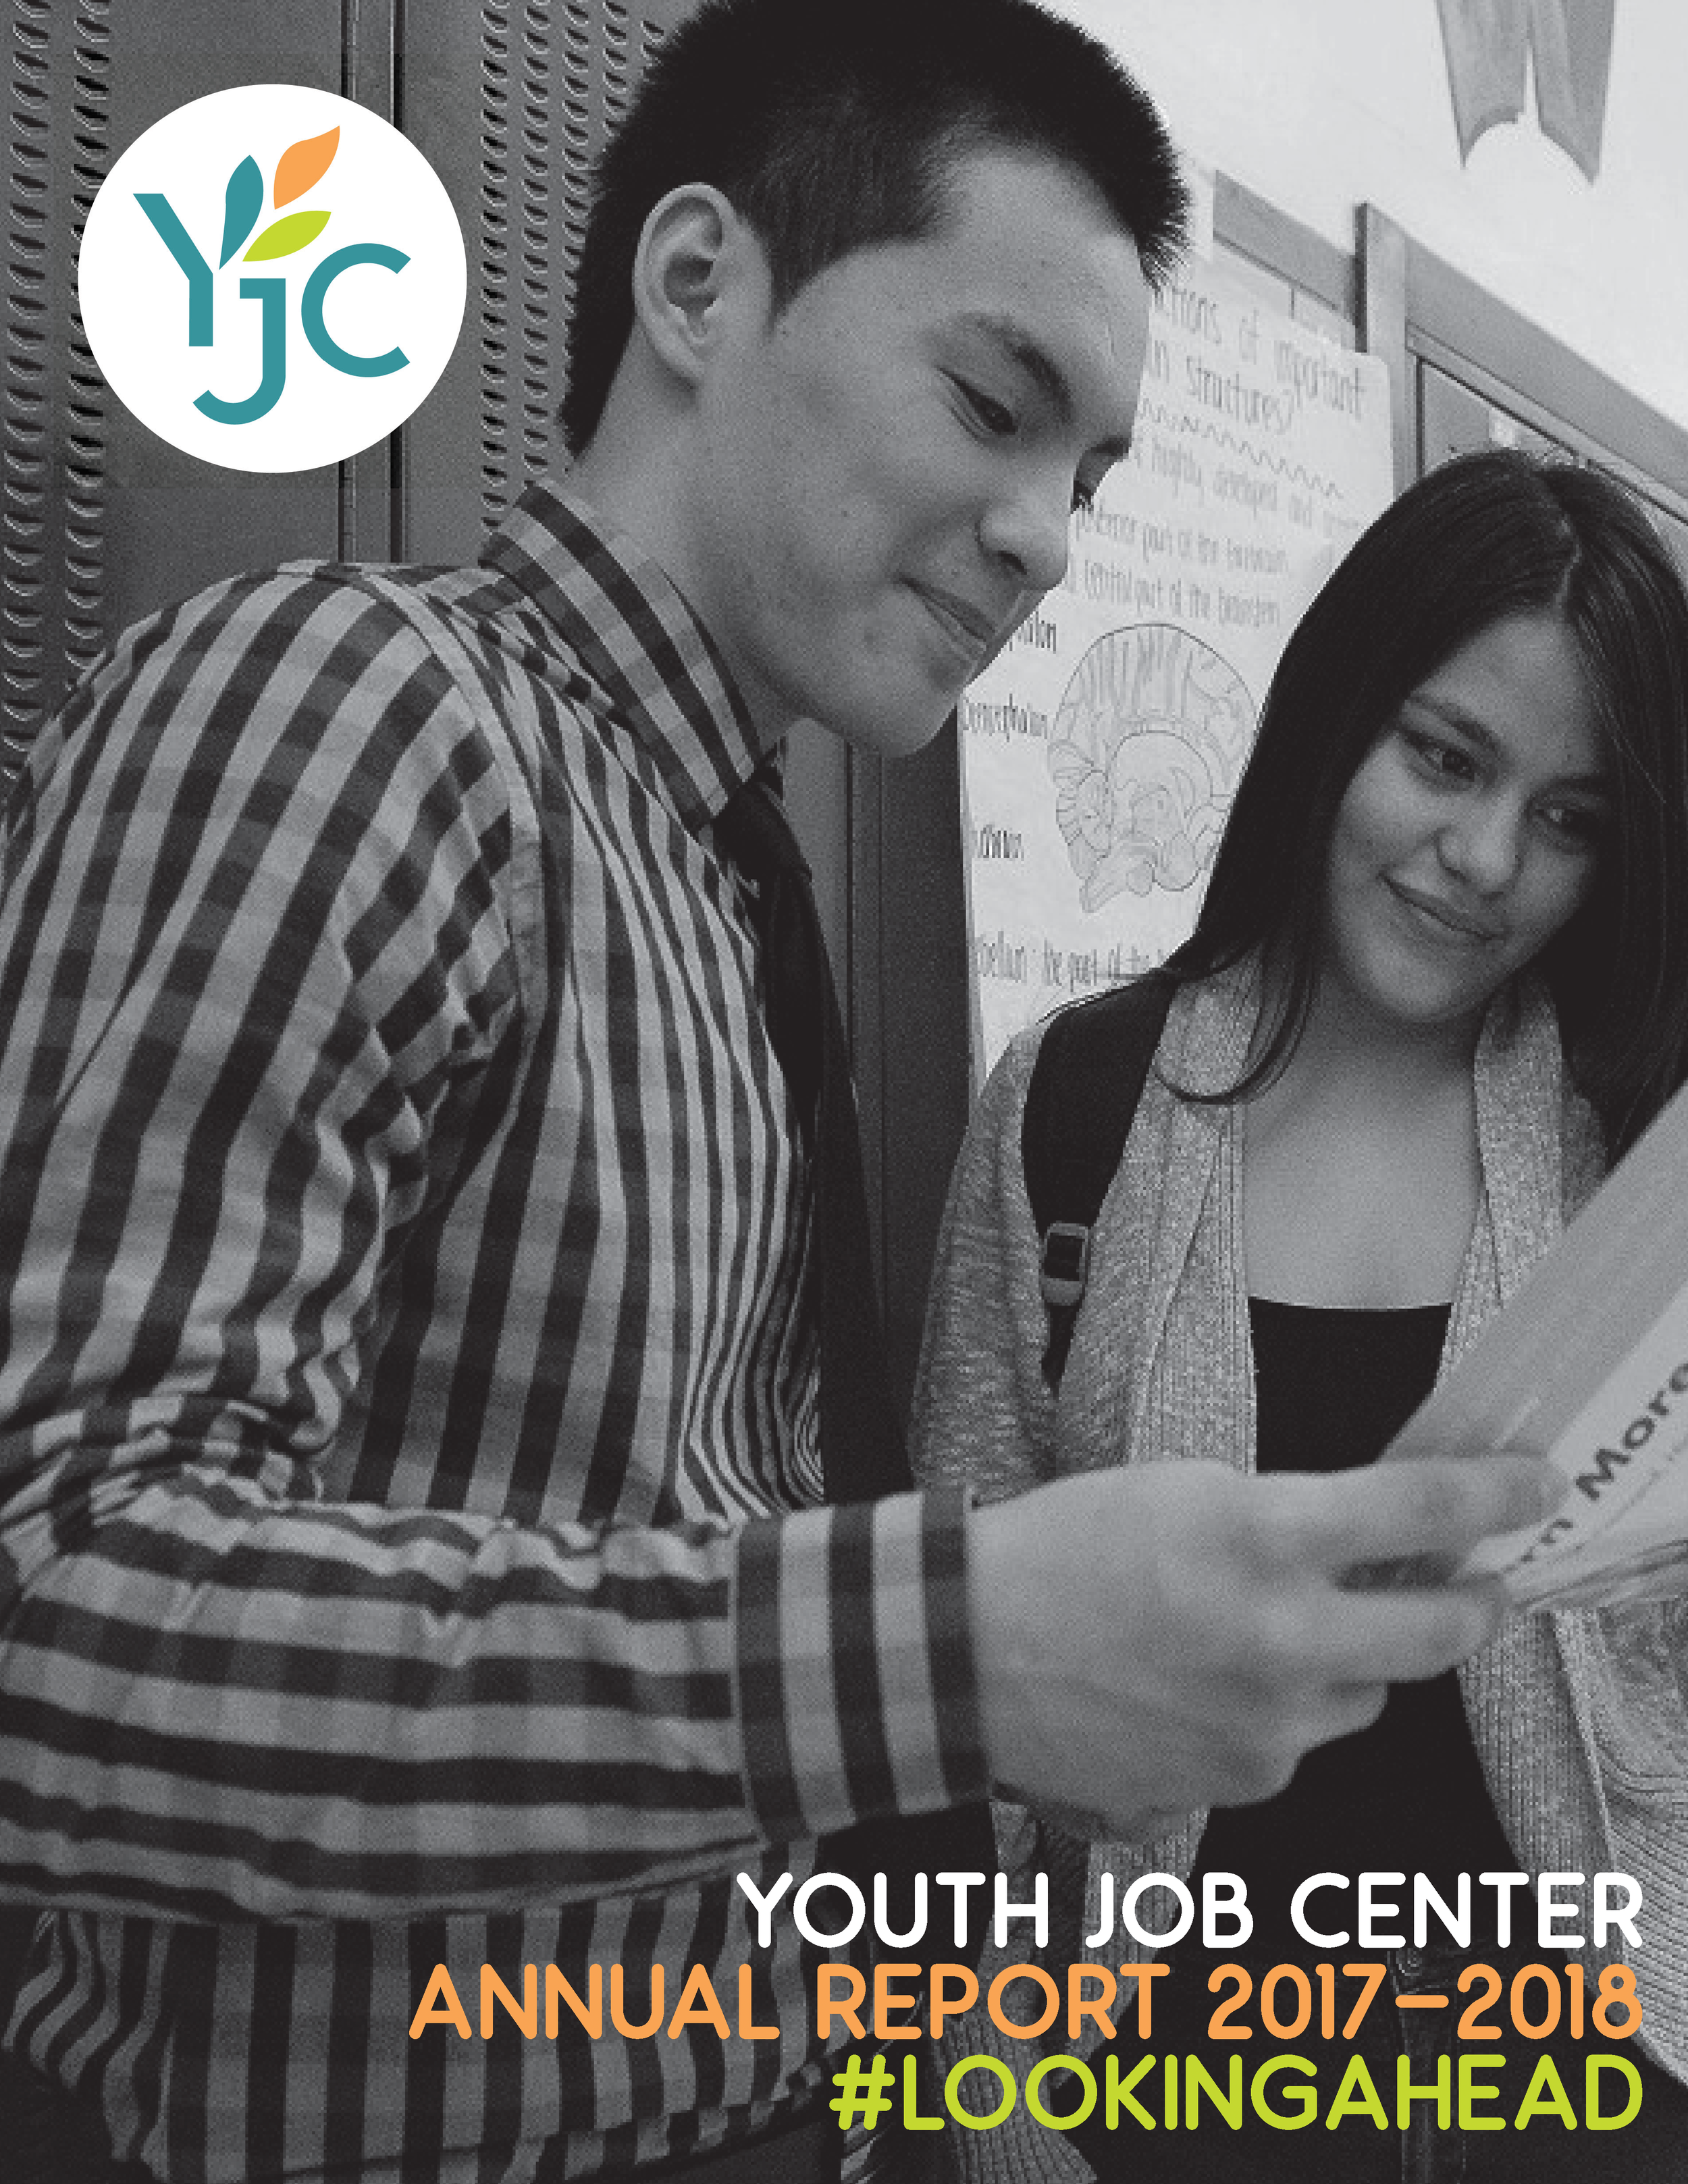 Youth Job Center Annual Report 2017-2018 - Cover Page.png